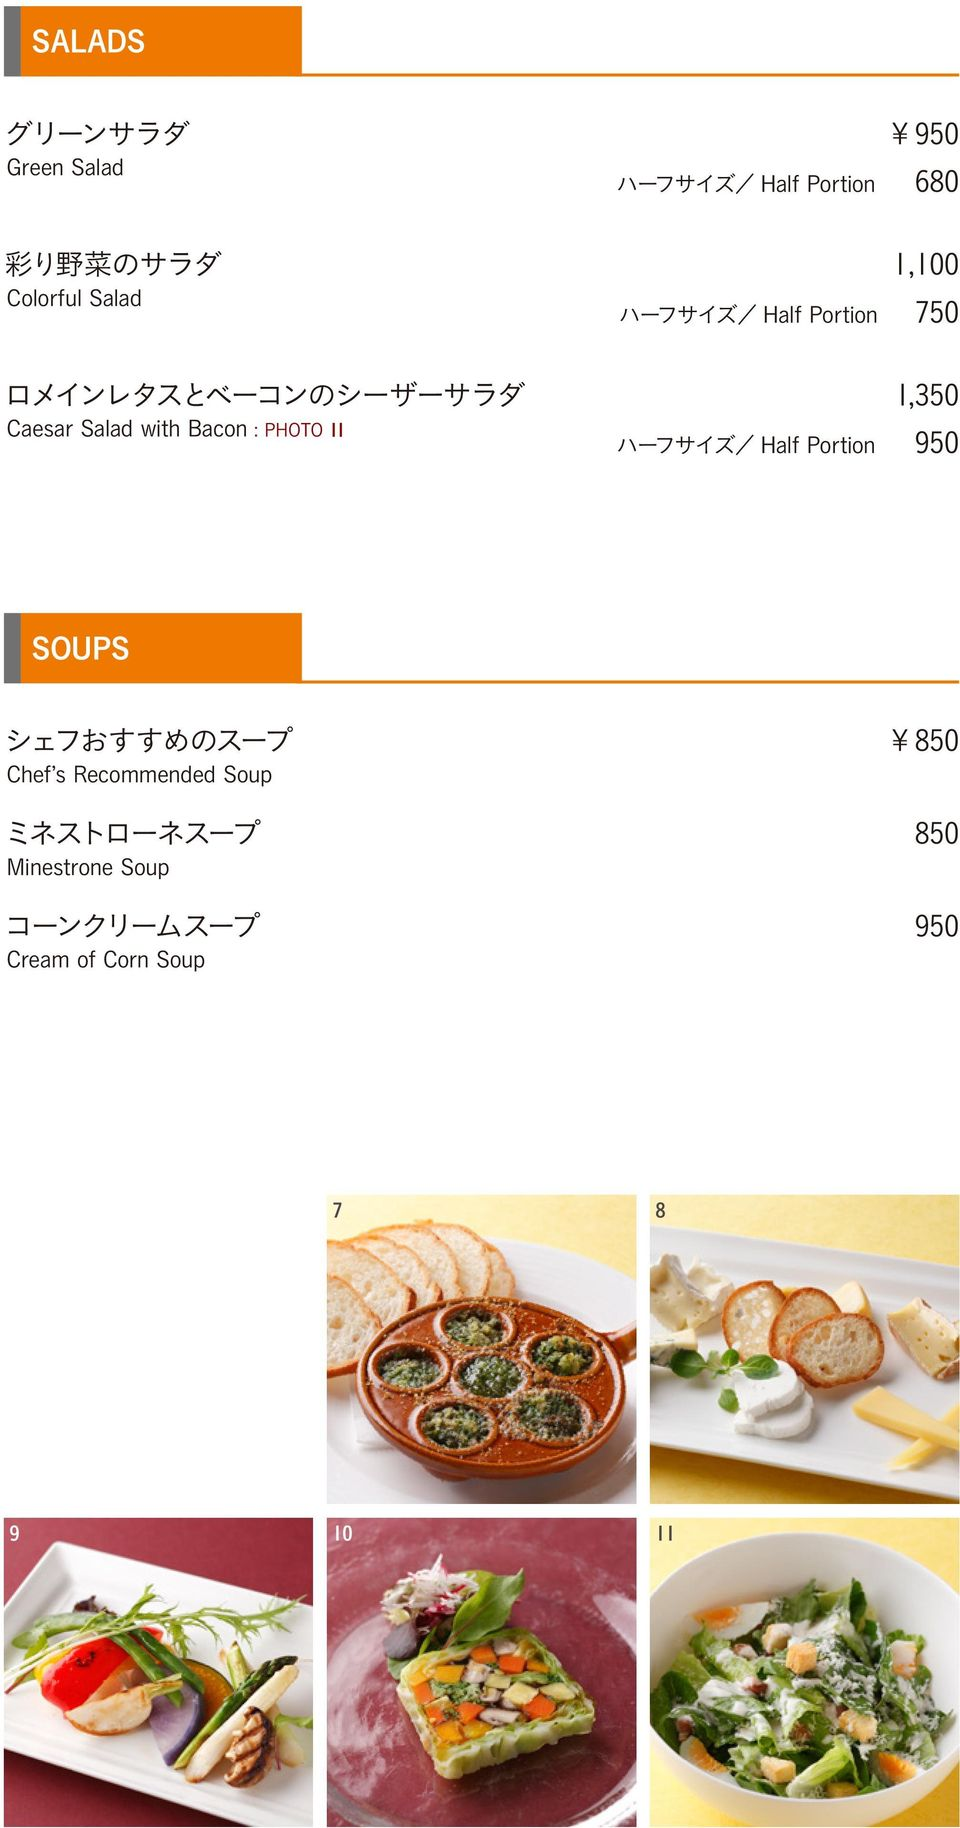 ............................... 1,350 Caesar Salad with Bacon : PHOTO 11 ハーフサイズ/ Half Portion 950 SOUPS シェフおすすめのスープ................................................... 850 Chef s Recommended Soup ミネストローネスープ.